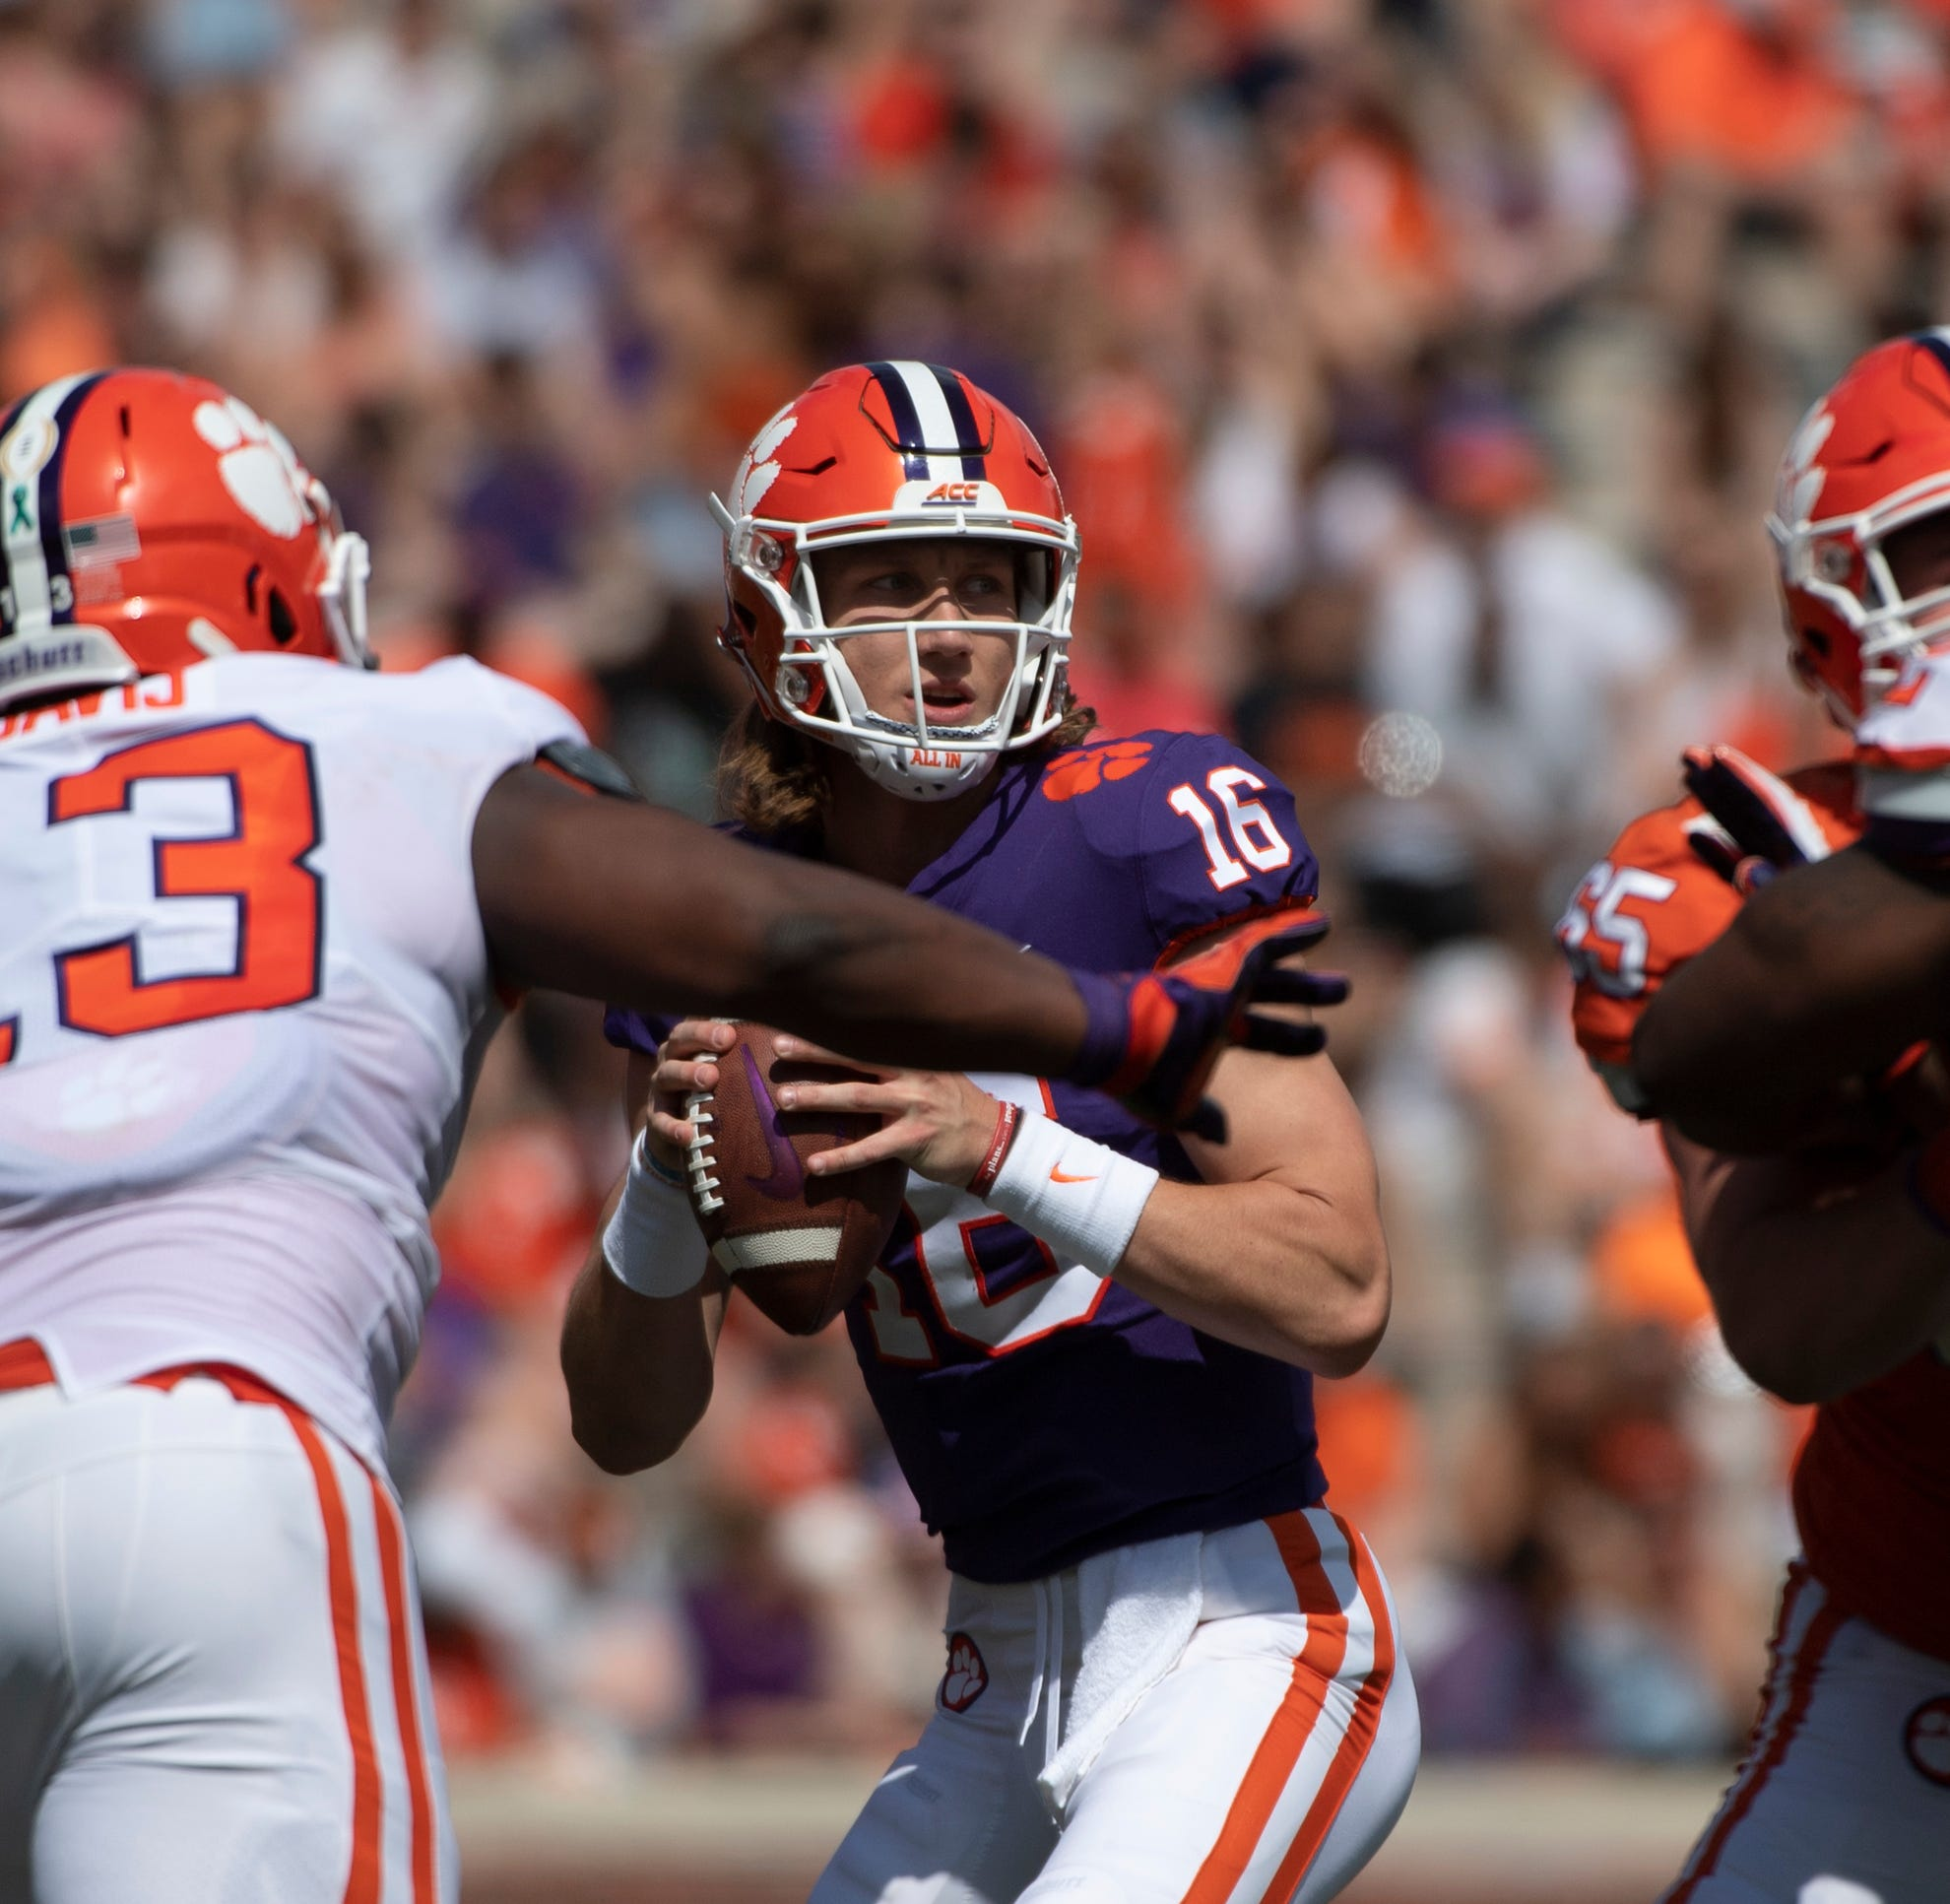 Clemson's Dabo Swinney does not want stars Lawrence, Etienne in protective bubble